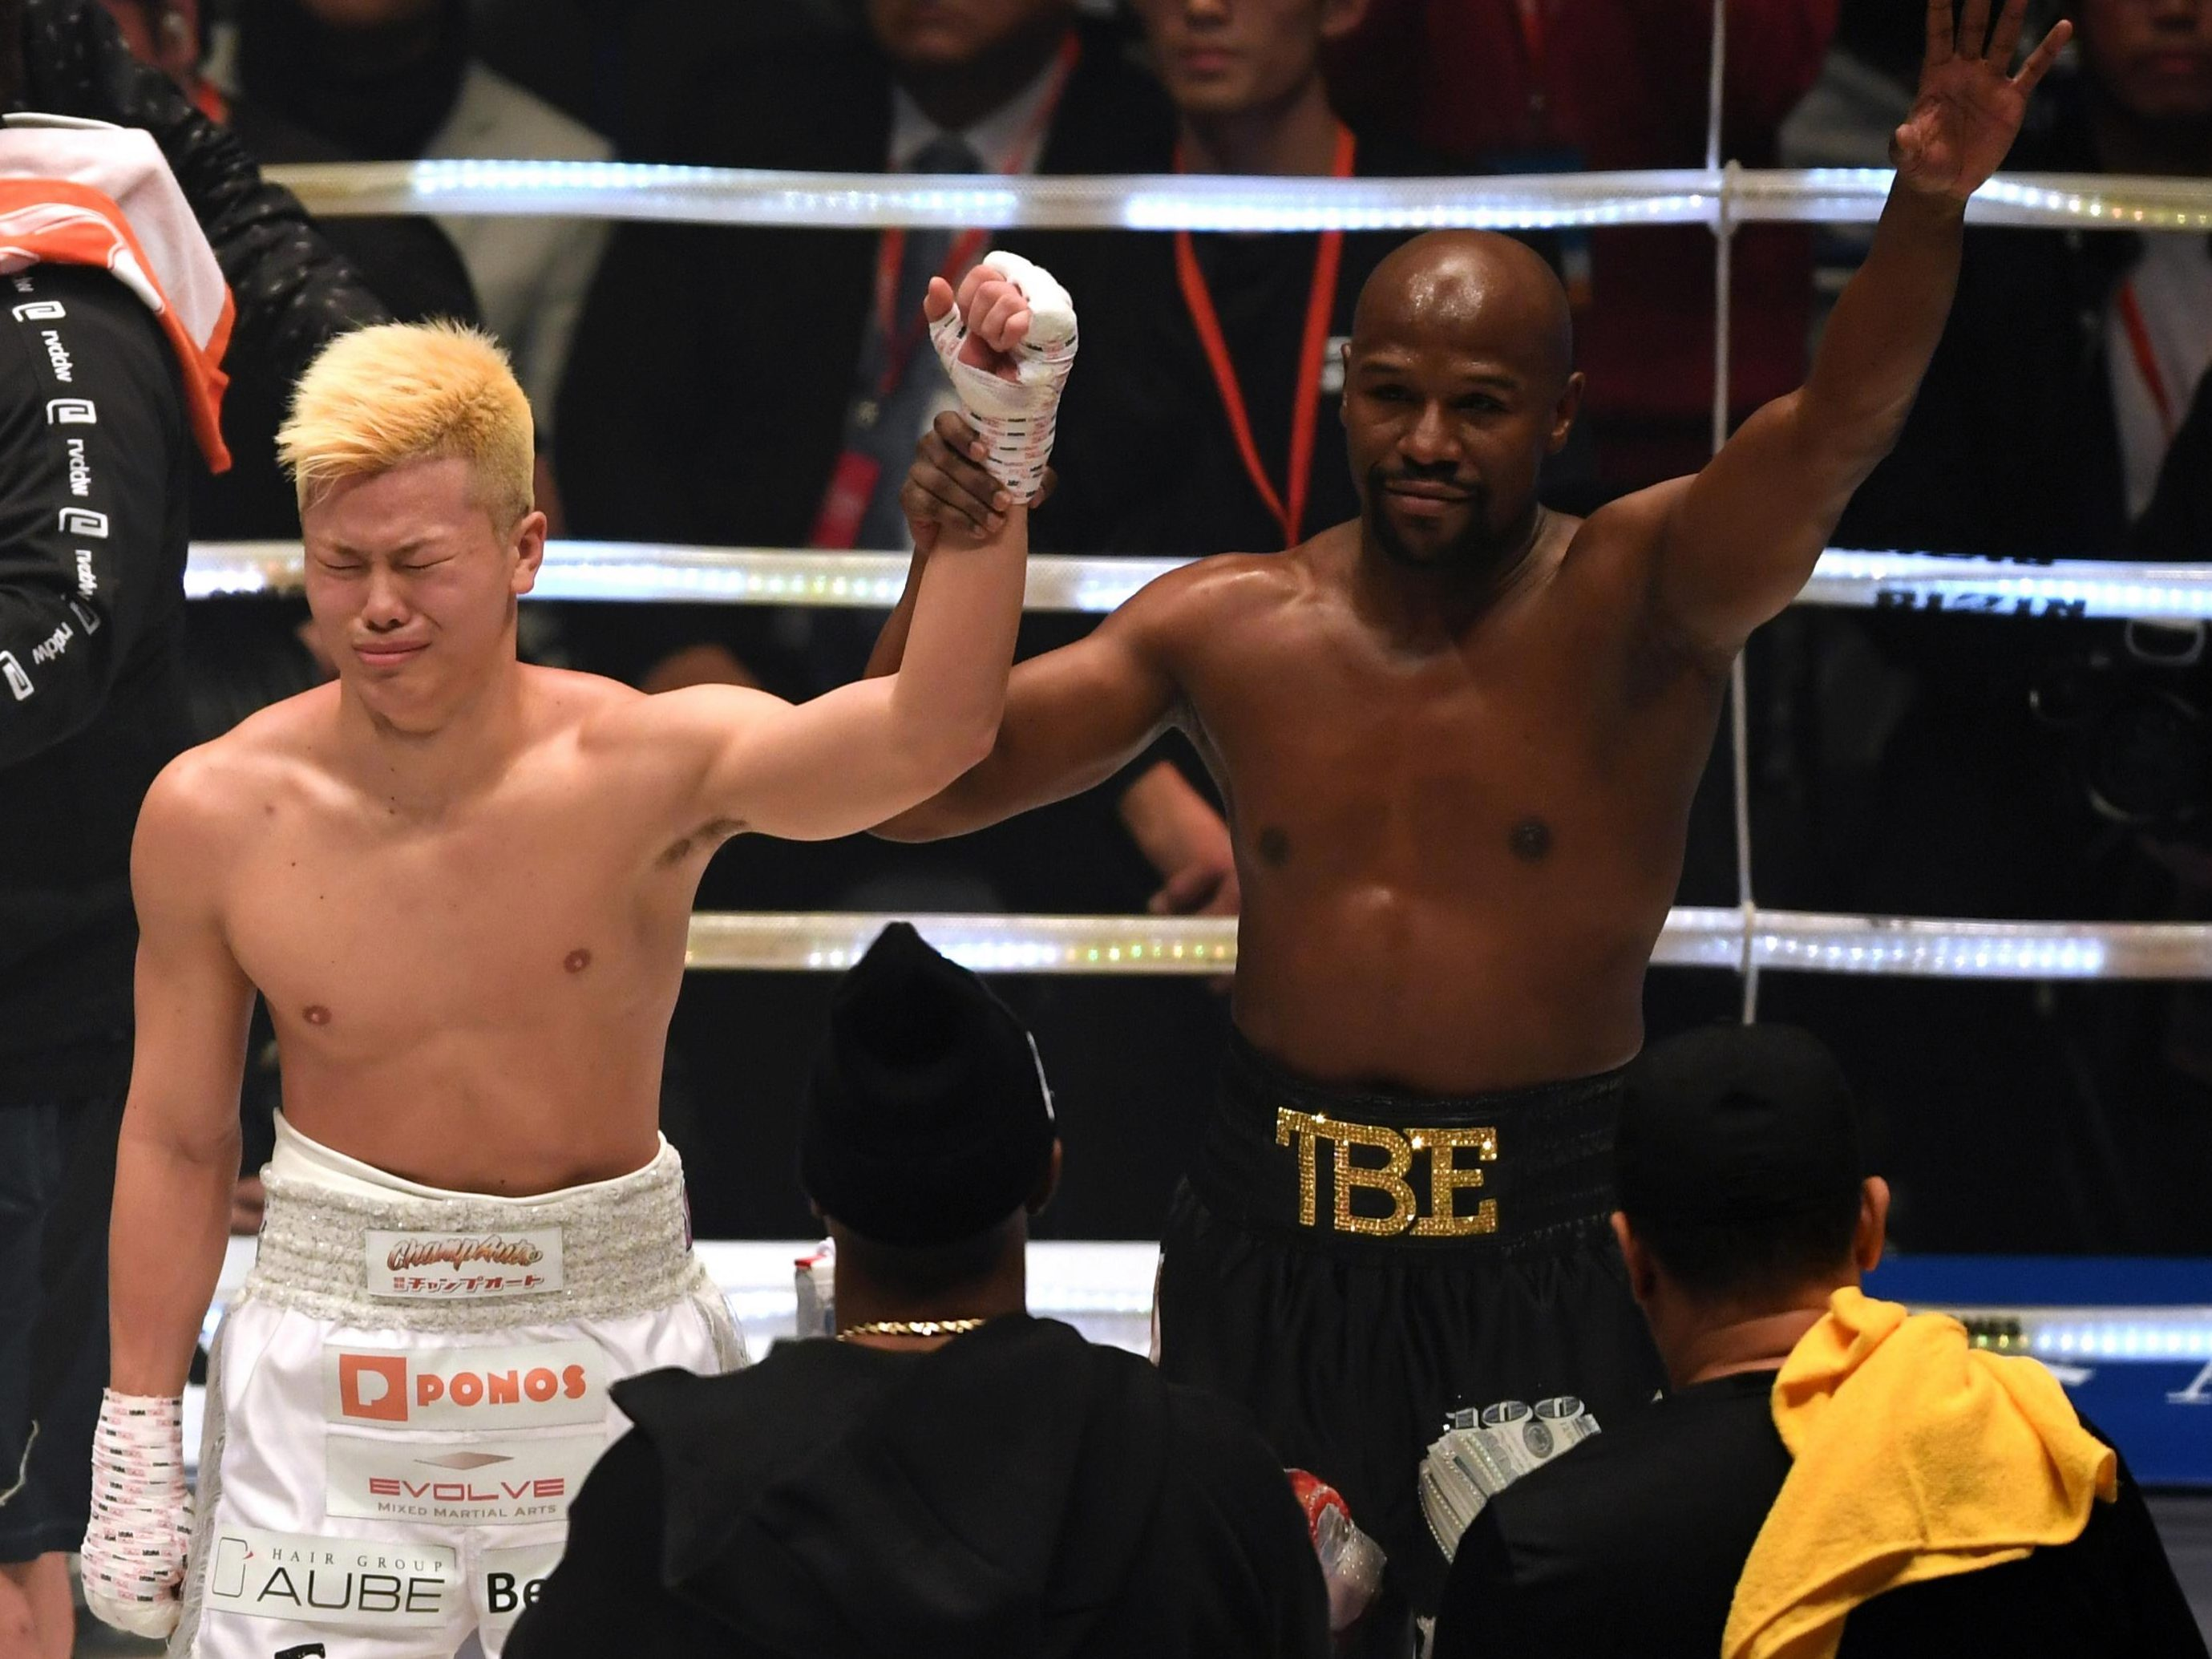 Floyd Mayweather raised the hand of the man he had completely outclassed in the boxing ring